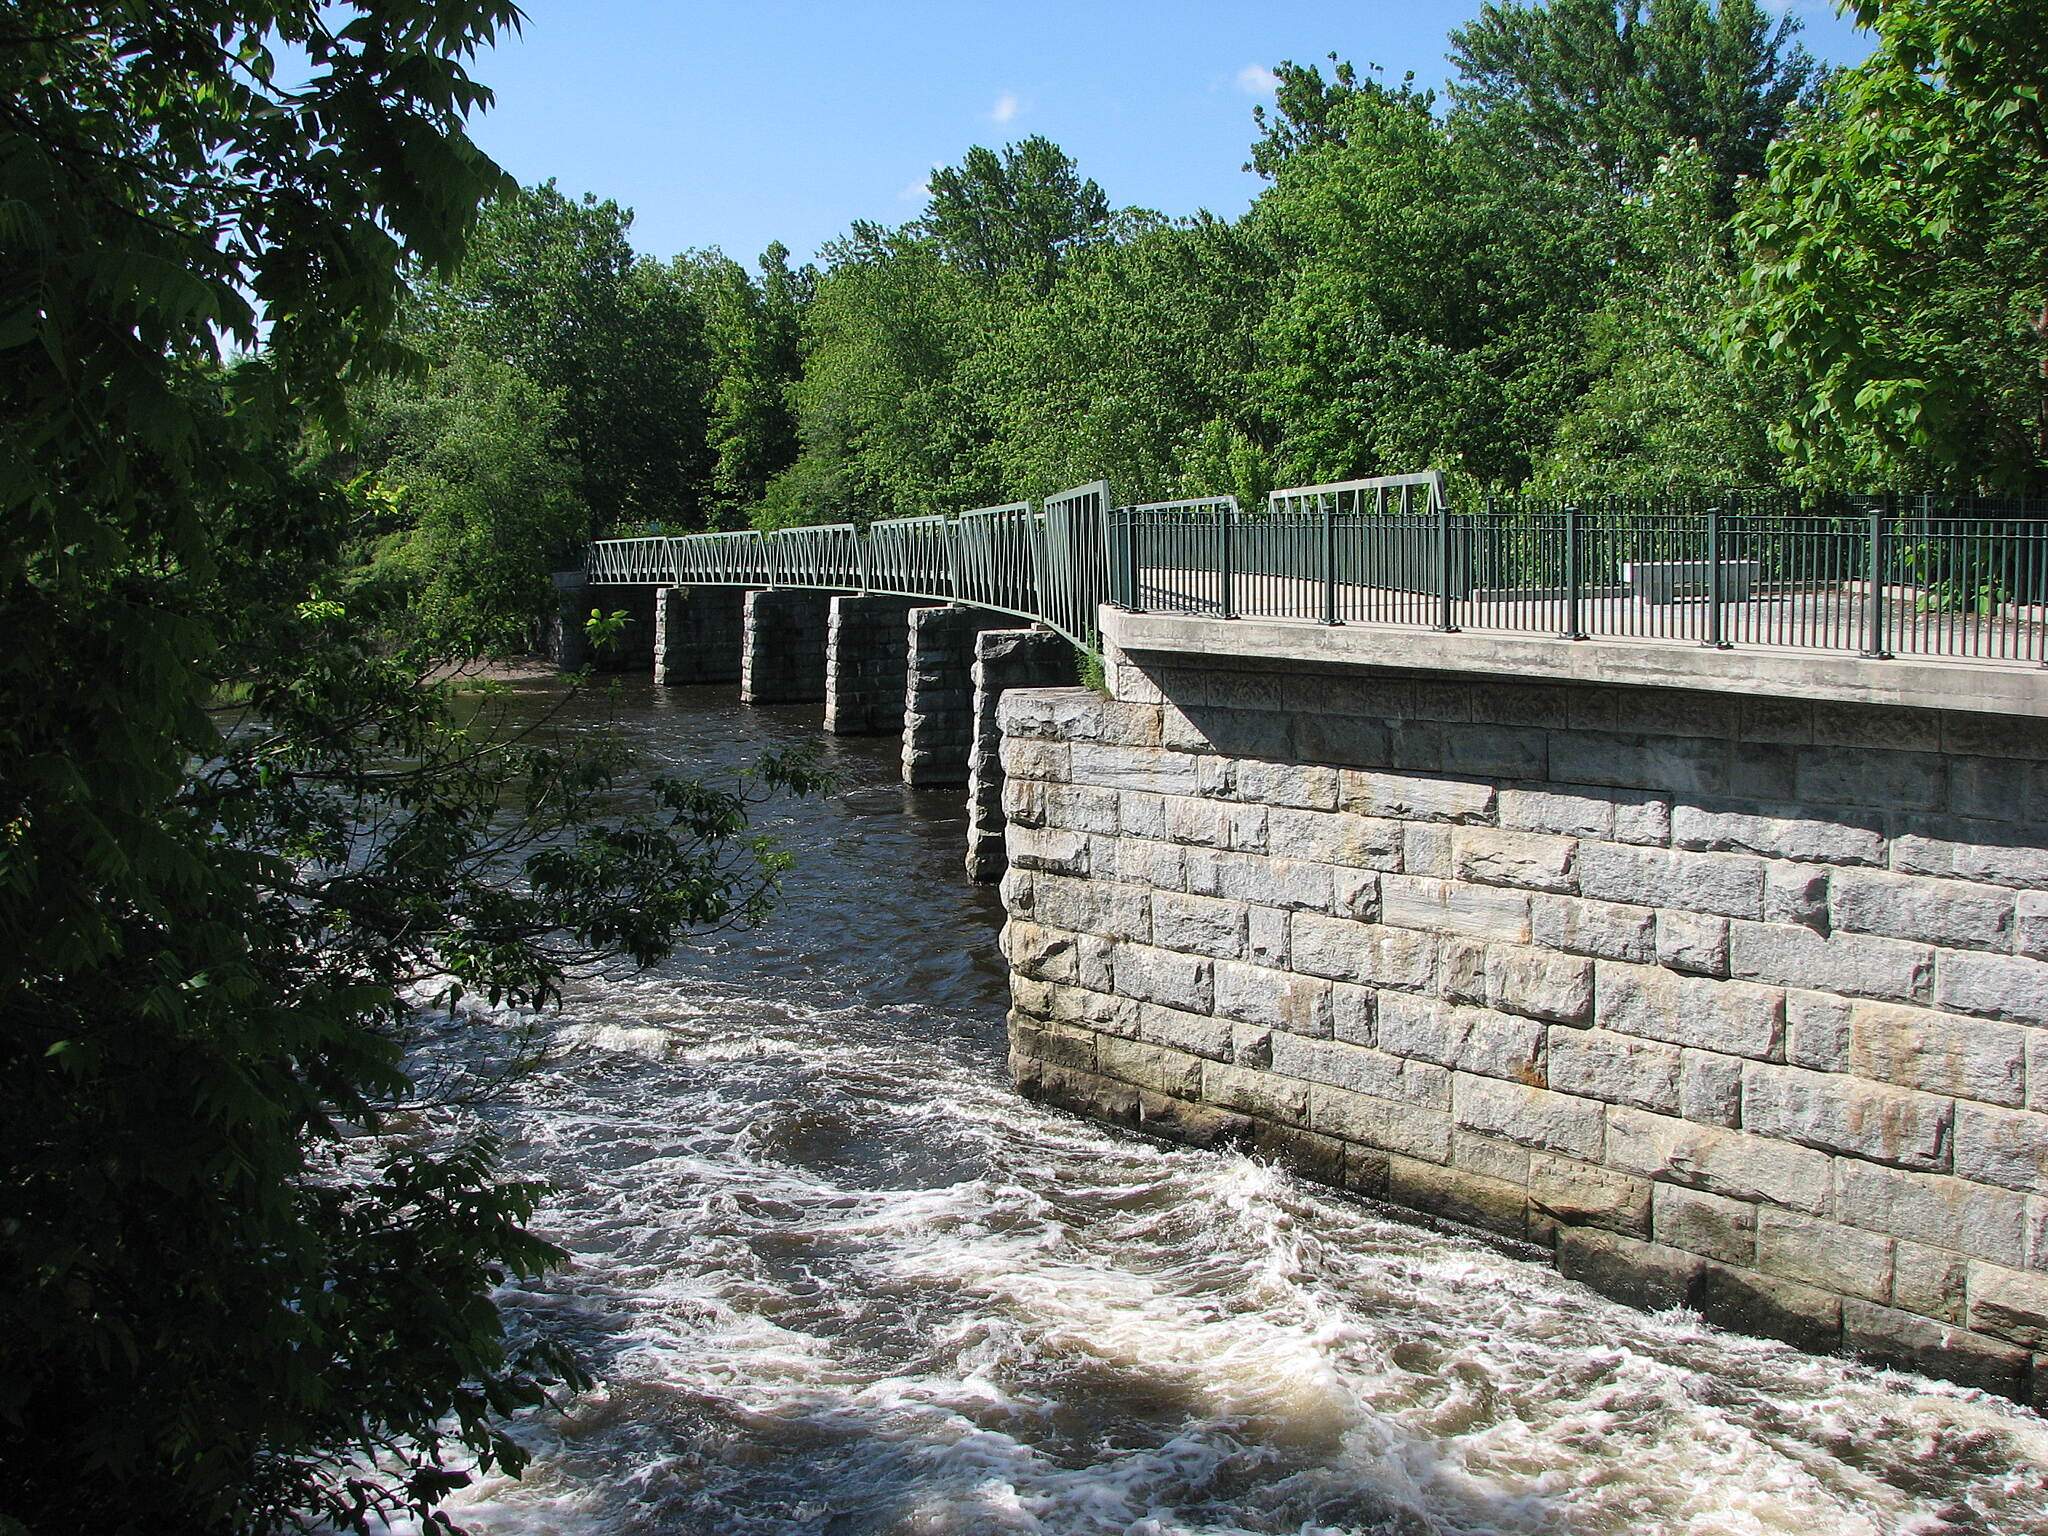 Blackstone River Greenway (RI) Dam Bridge  Beautiful Stone Bridge over dam in Blackstone